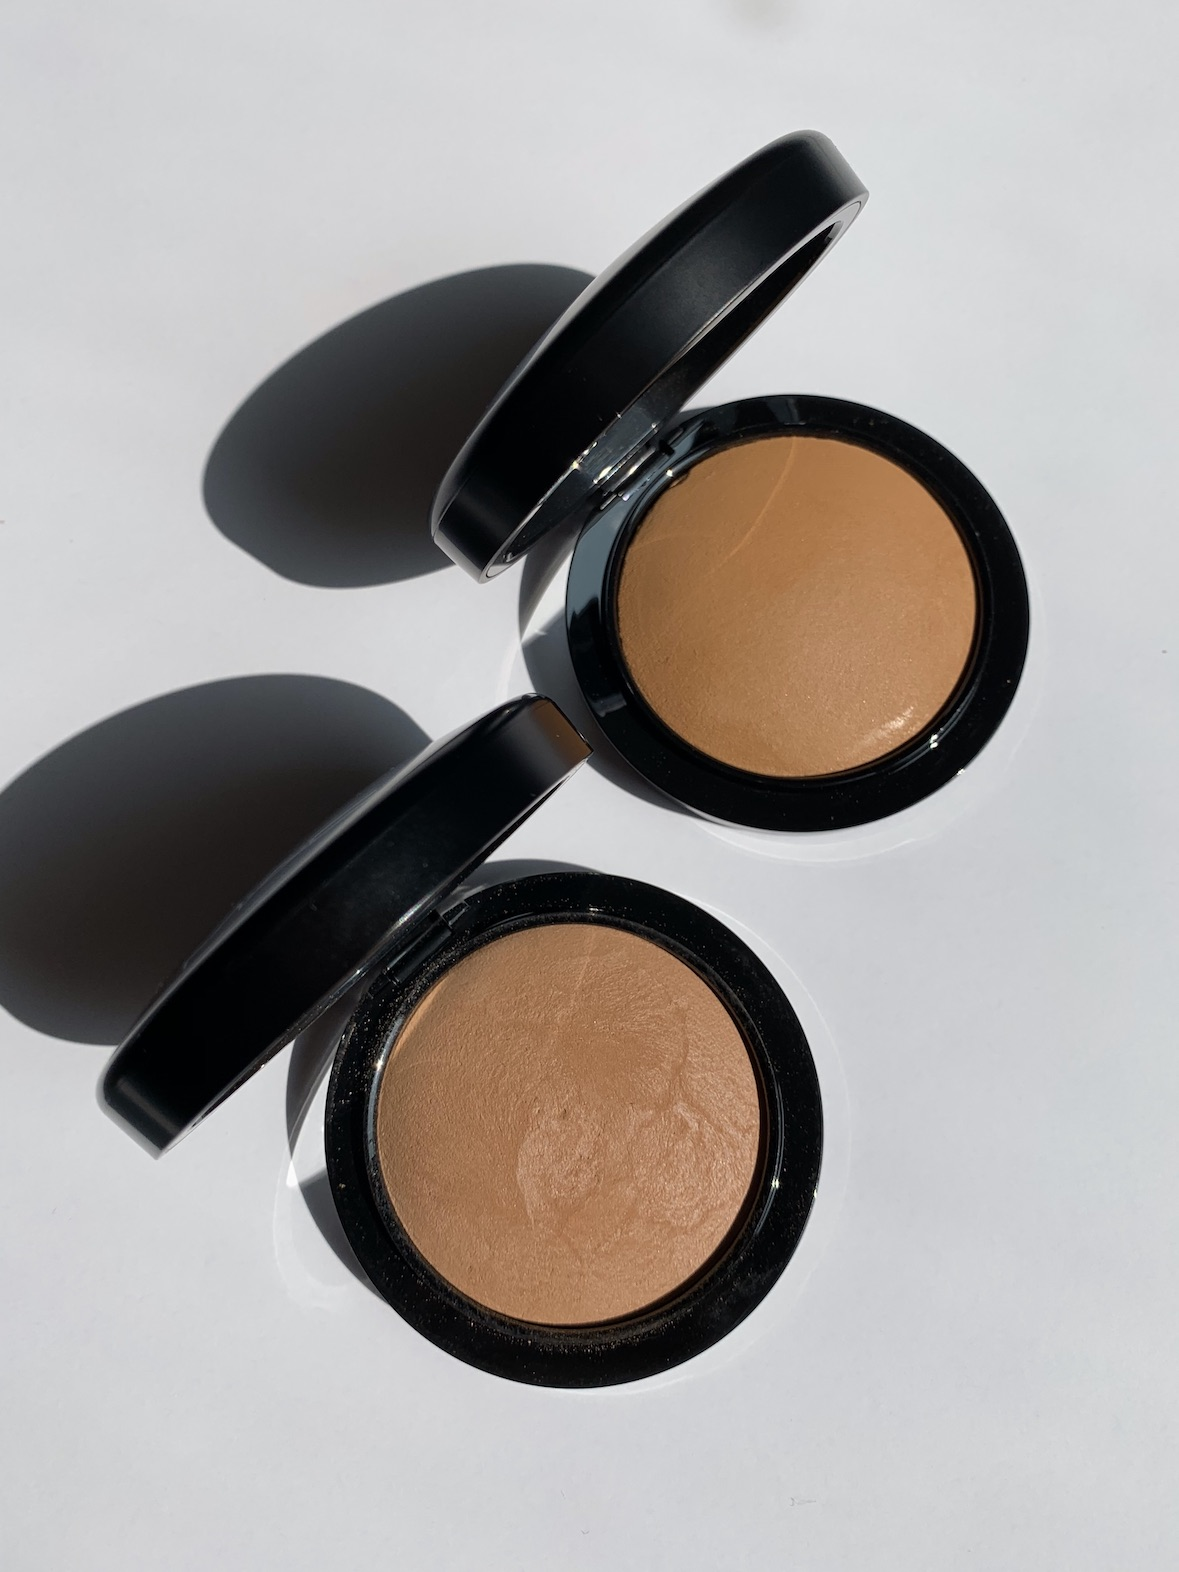 MAC Mineralize Skinfinish Natural Powder Medium Deep and Dark